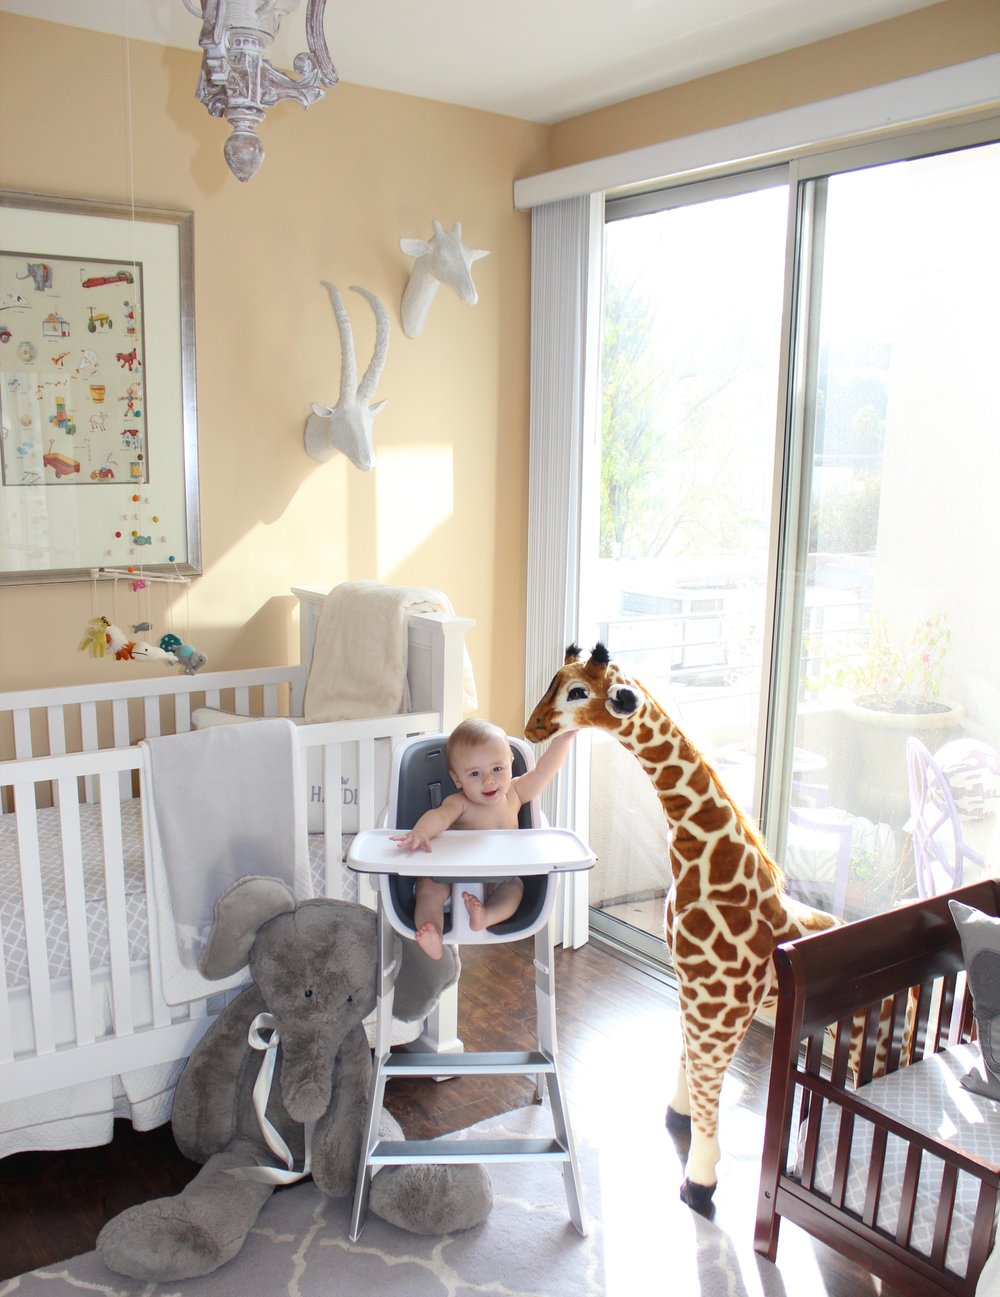 "When I need to clean up the boys' room, sometimes I bring his   4Moms highchair   in there and let him commiserate with his ""friends!"" He loves being more eye level with   the giraffe  . And he loves being higher up in general, so we get a lot of use out of this chair. And I enjoy the sleek look."